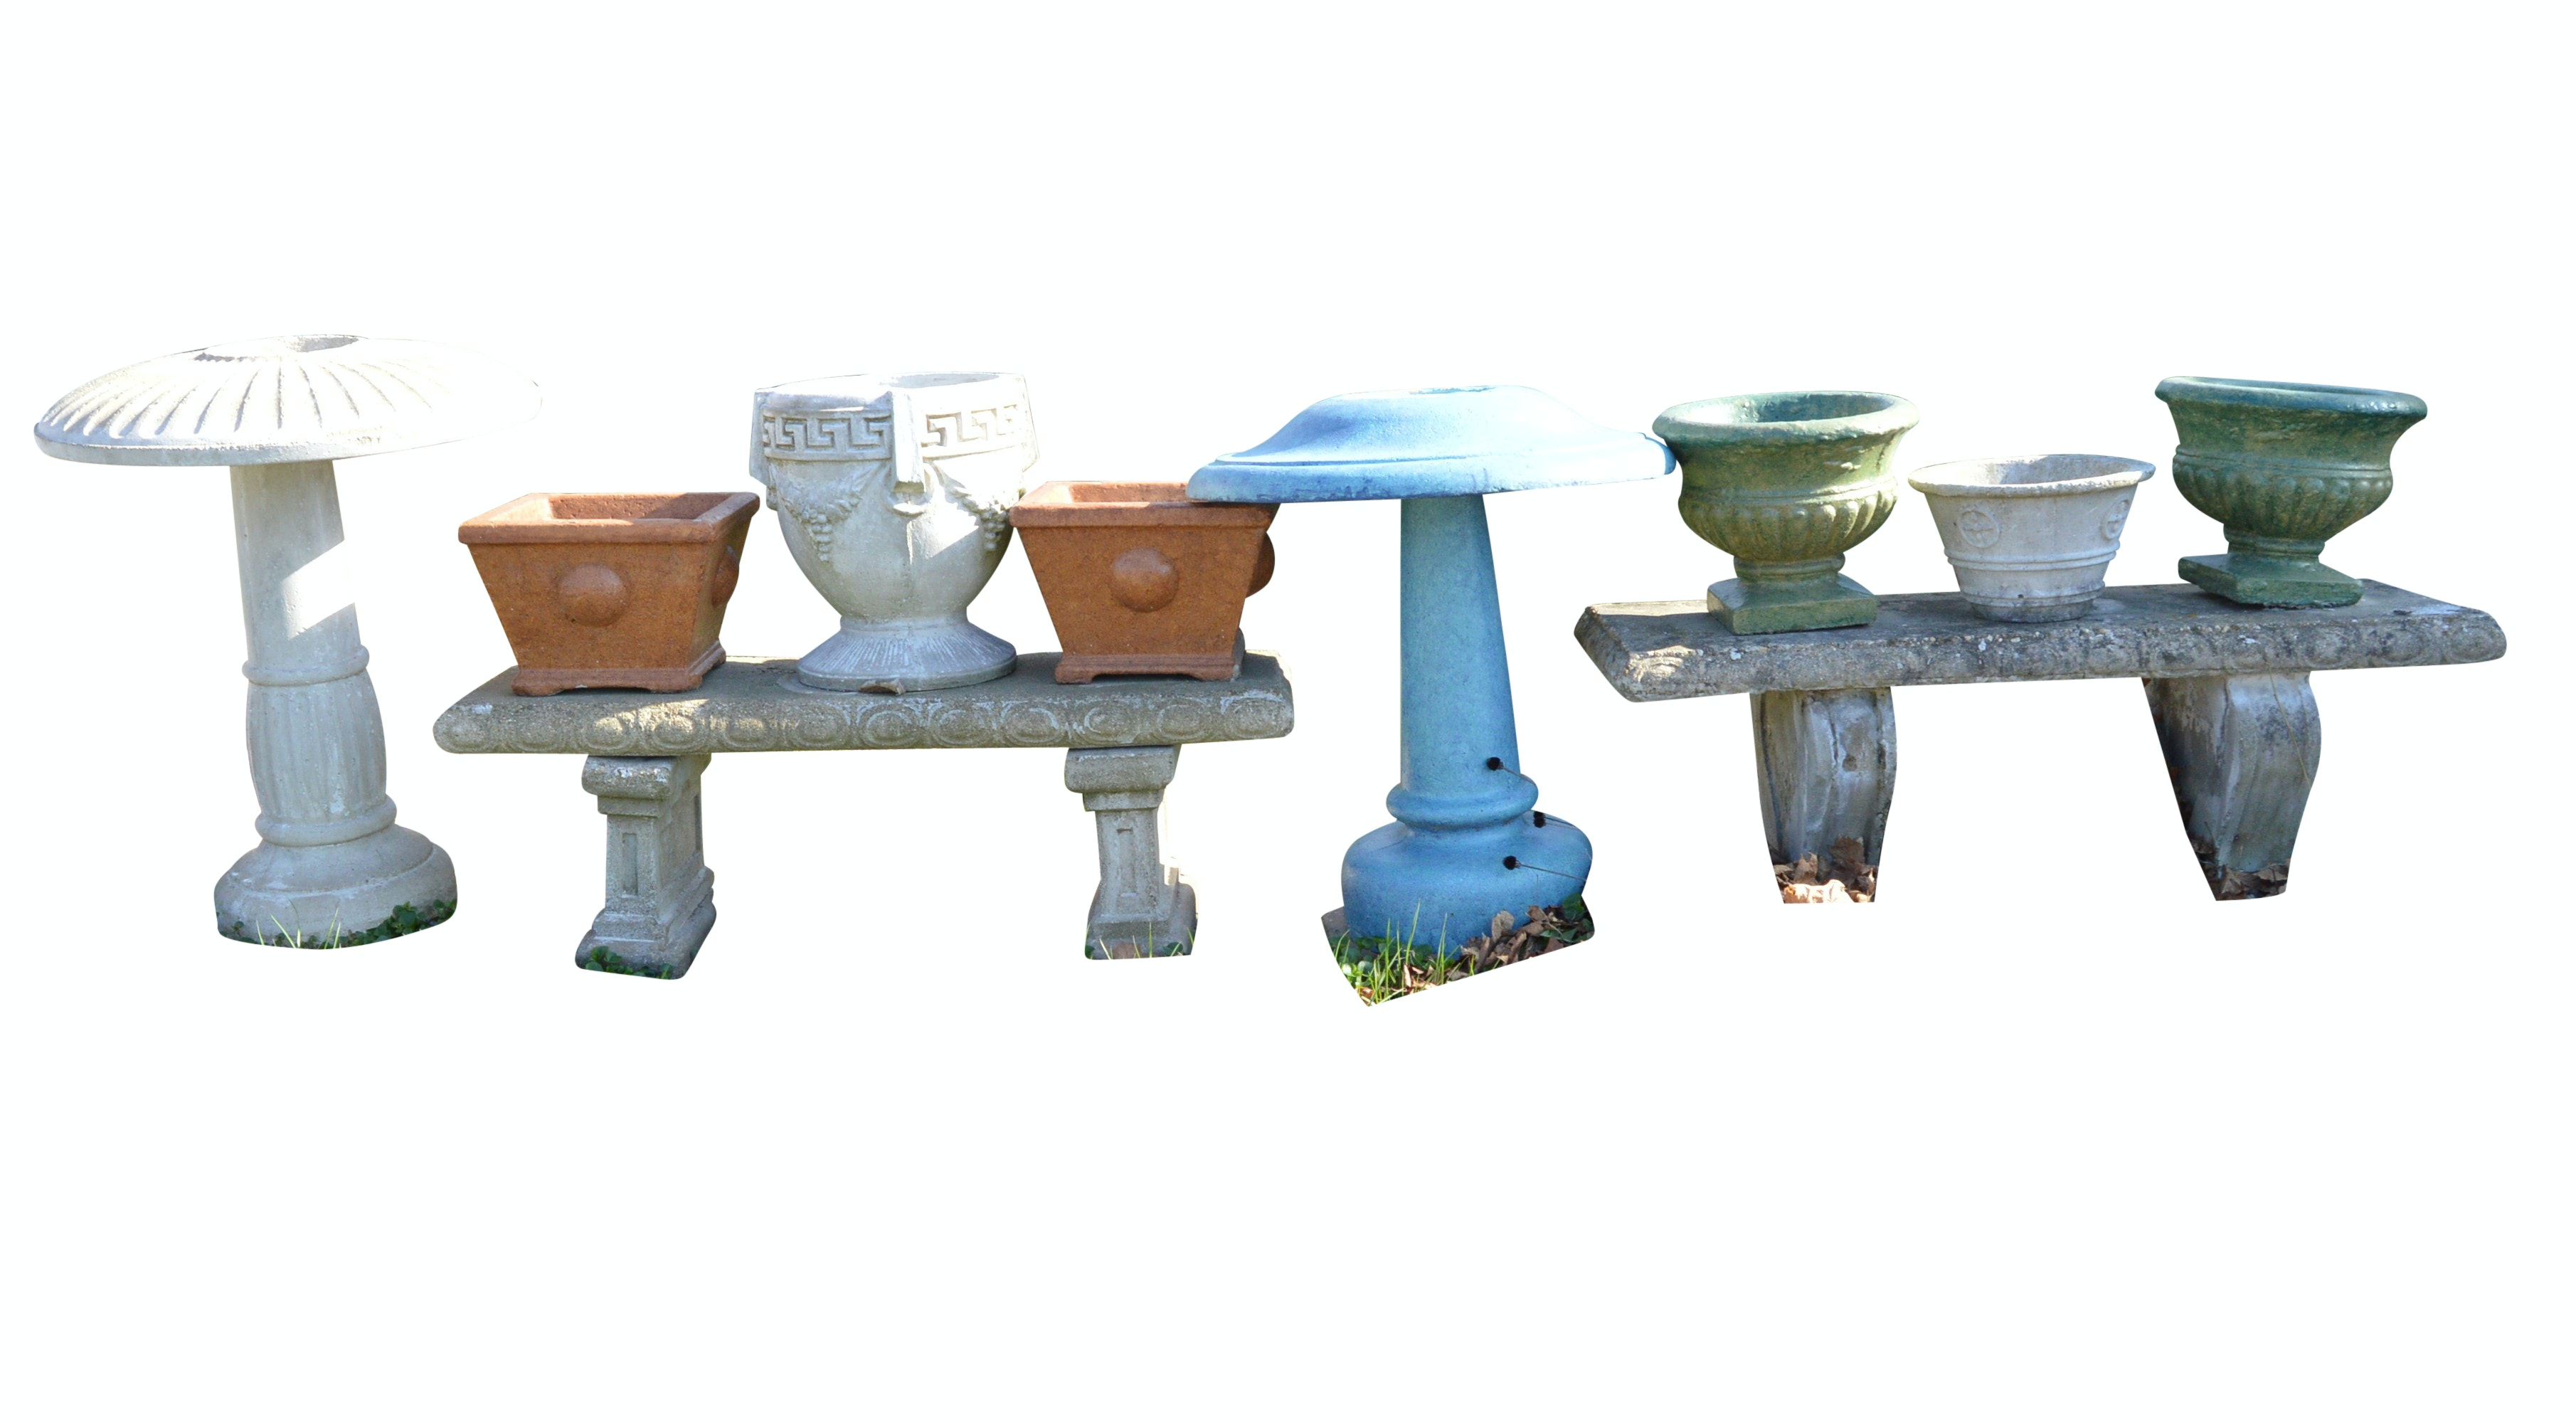 Collection of Concrete Benches, Birdbaths and Planters